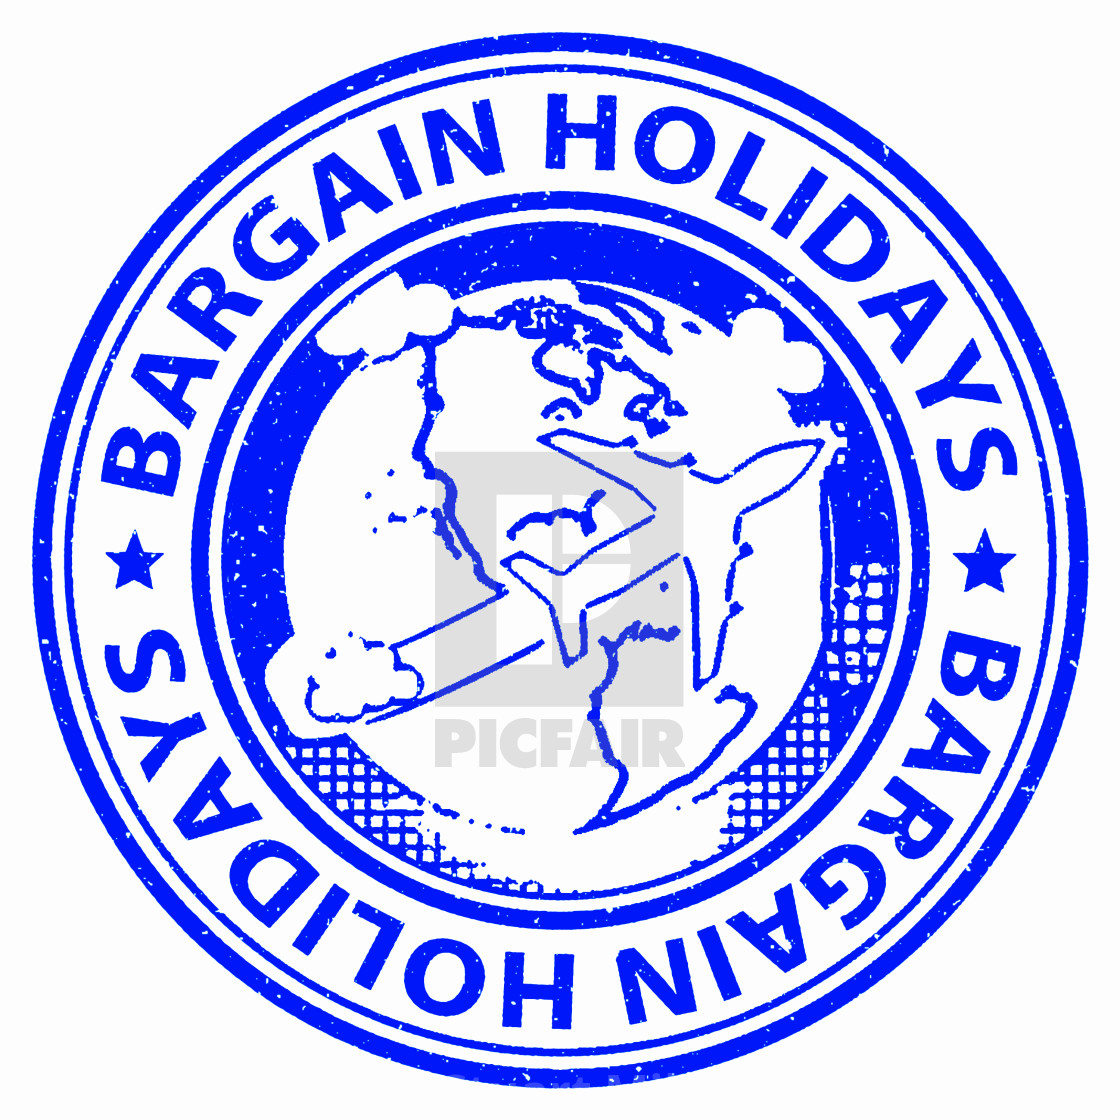 """Bargain Holidays Means Reduction Promotional And Vacational"" stock image"